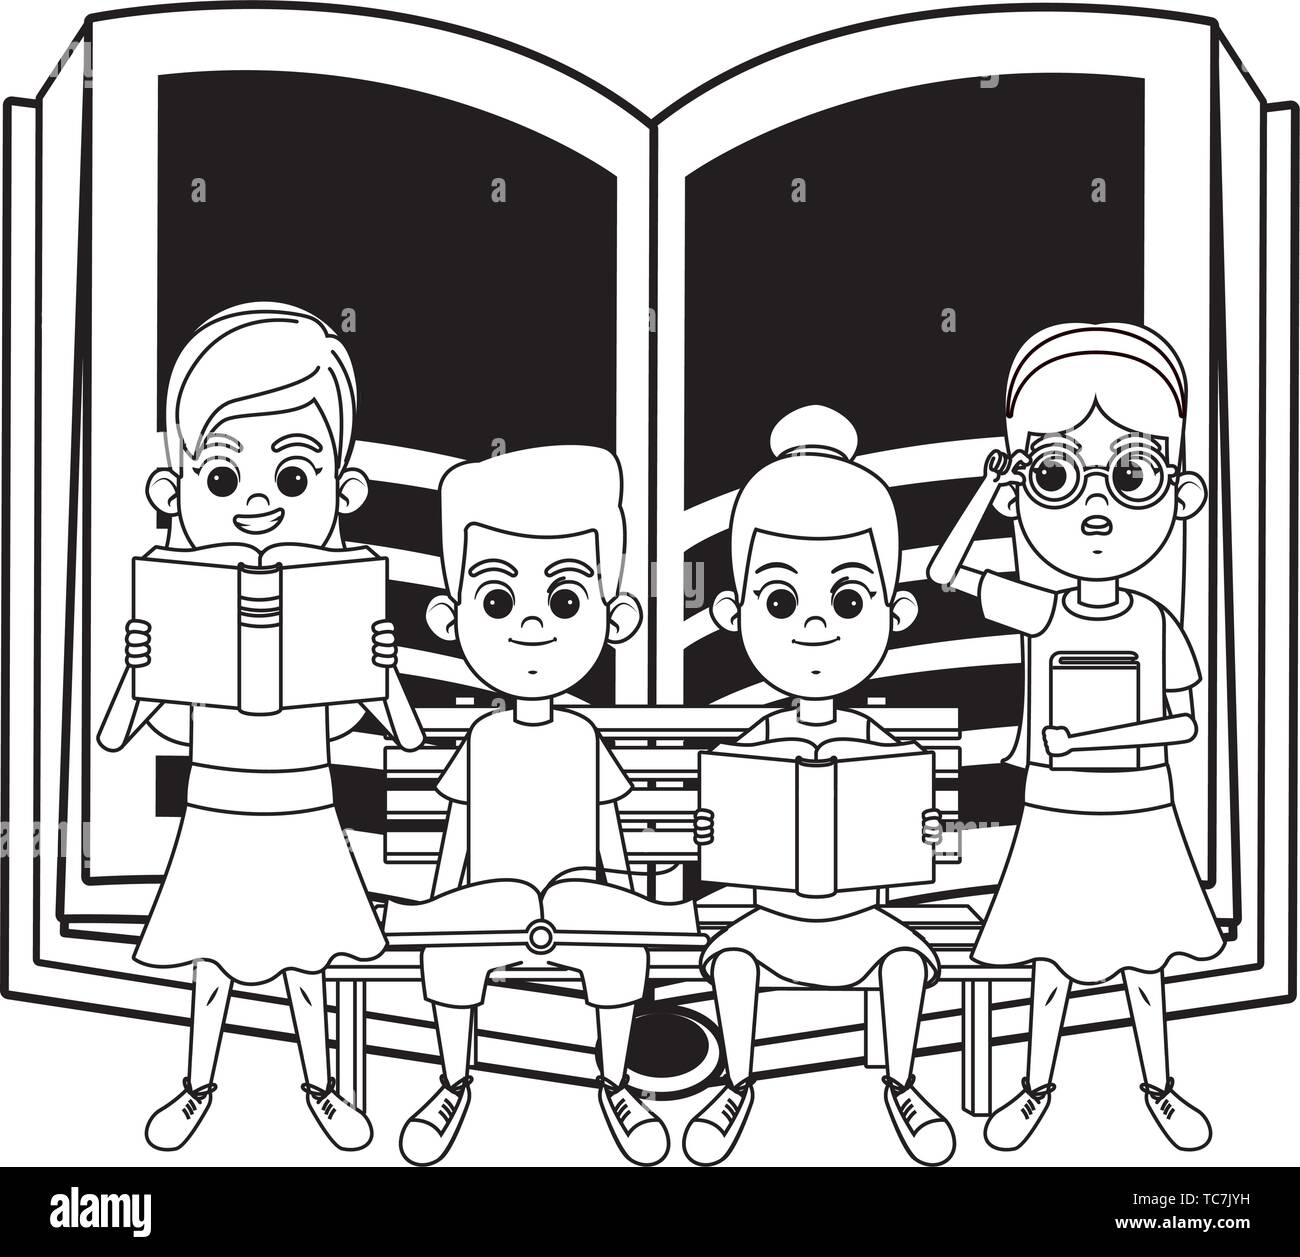 Enjoyable Young Kids With Books On A Bench Black And White Stock Machost Co Dining Chair Design Ideas Machostcouk